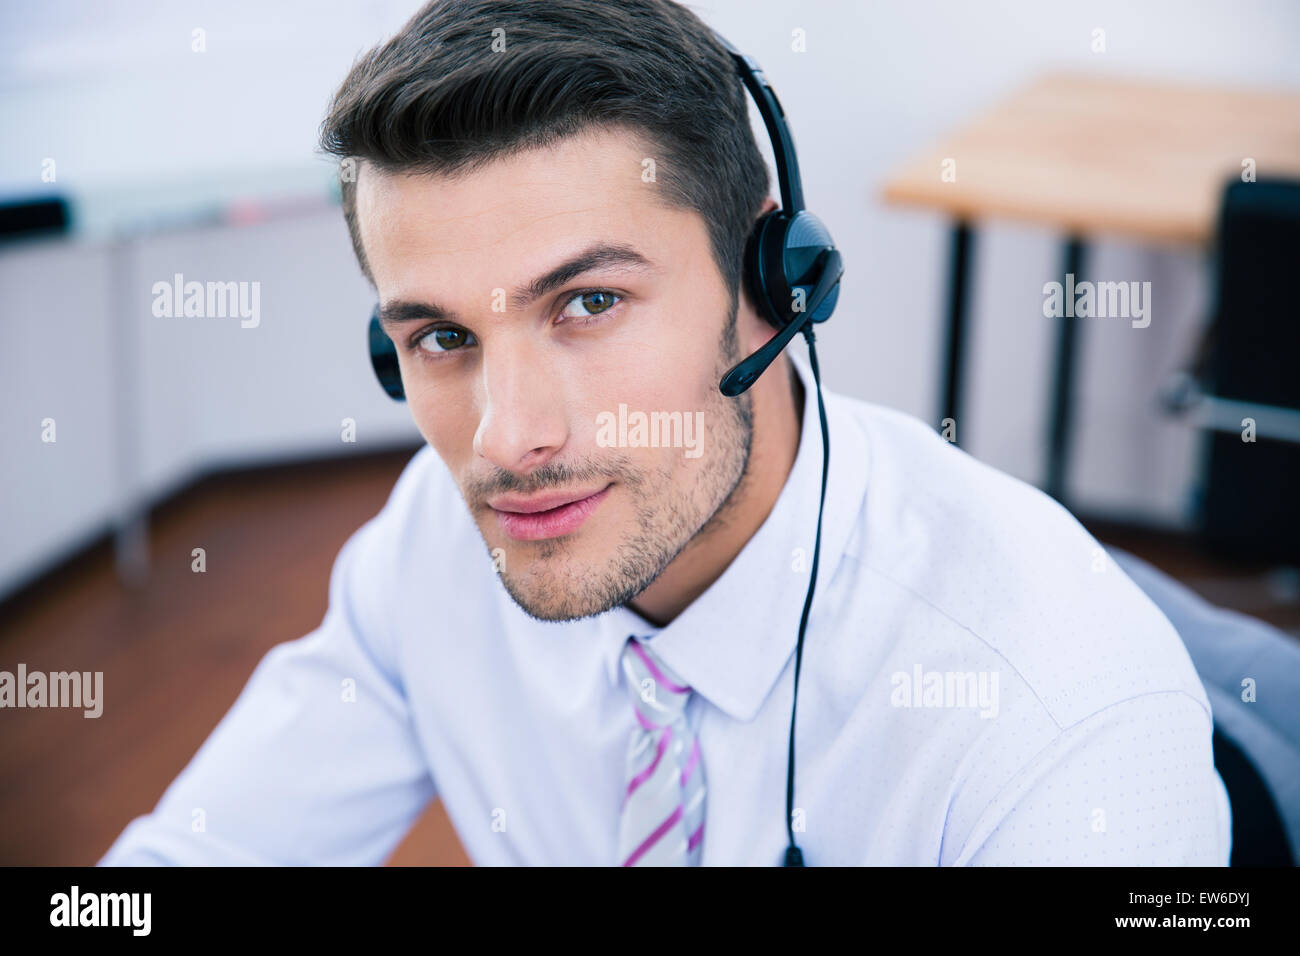 Portrait of a handsome male operator with headset looking at camera in office - Stock Image